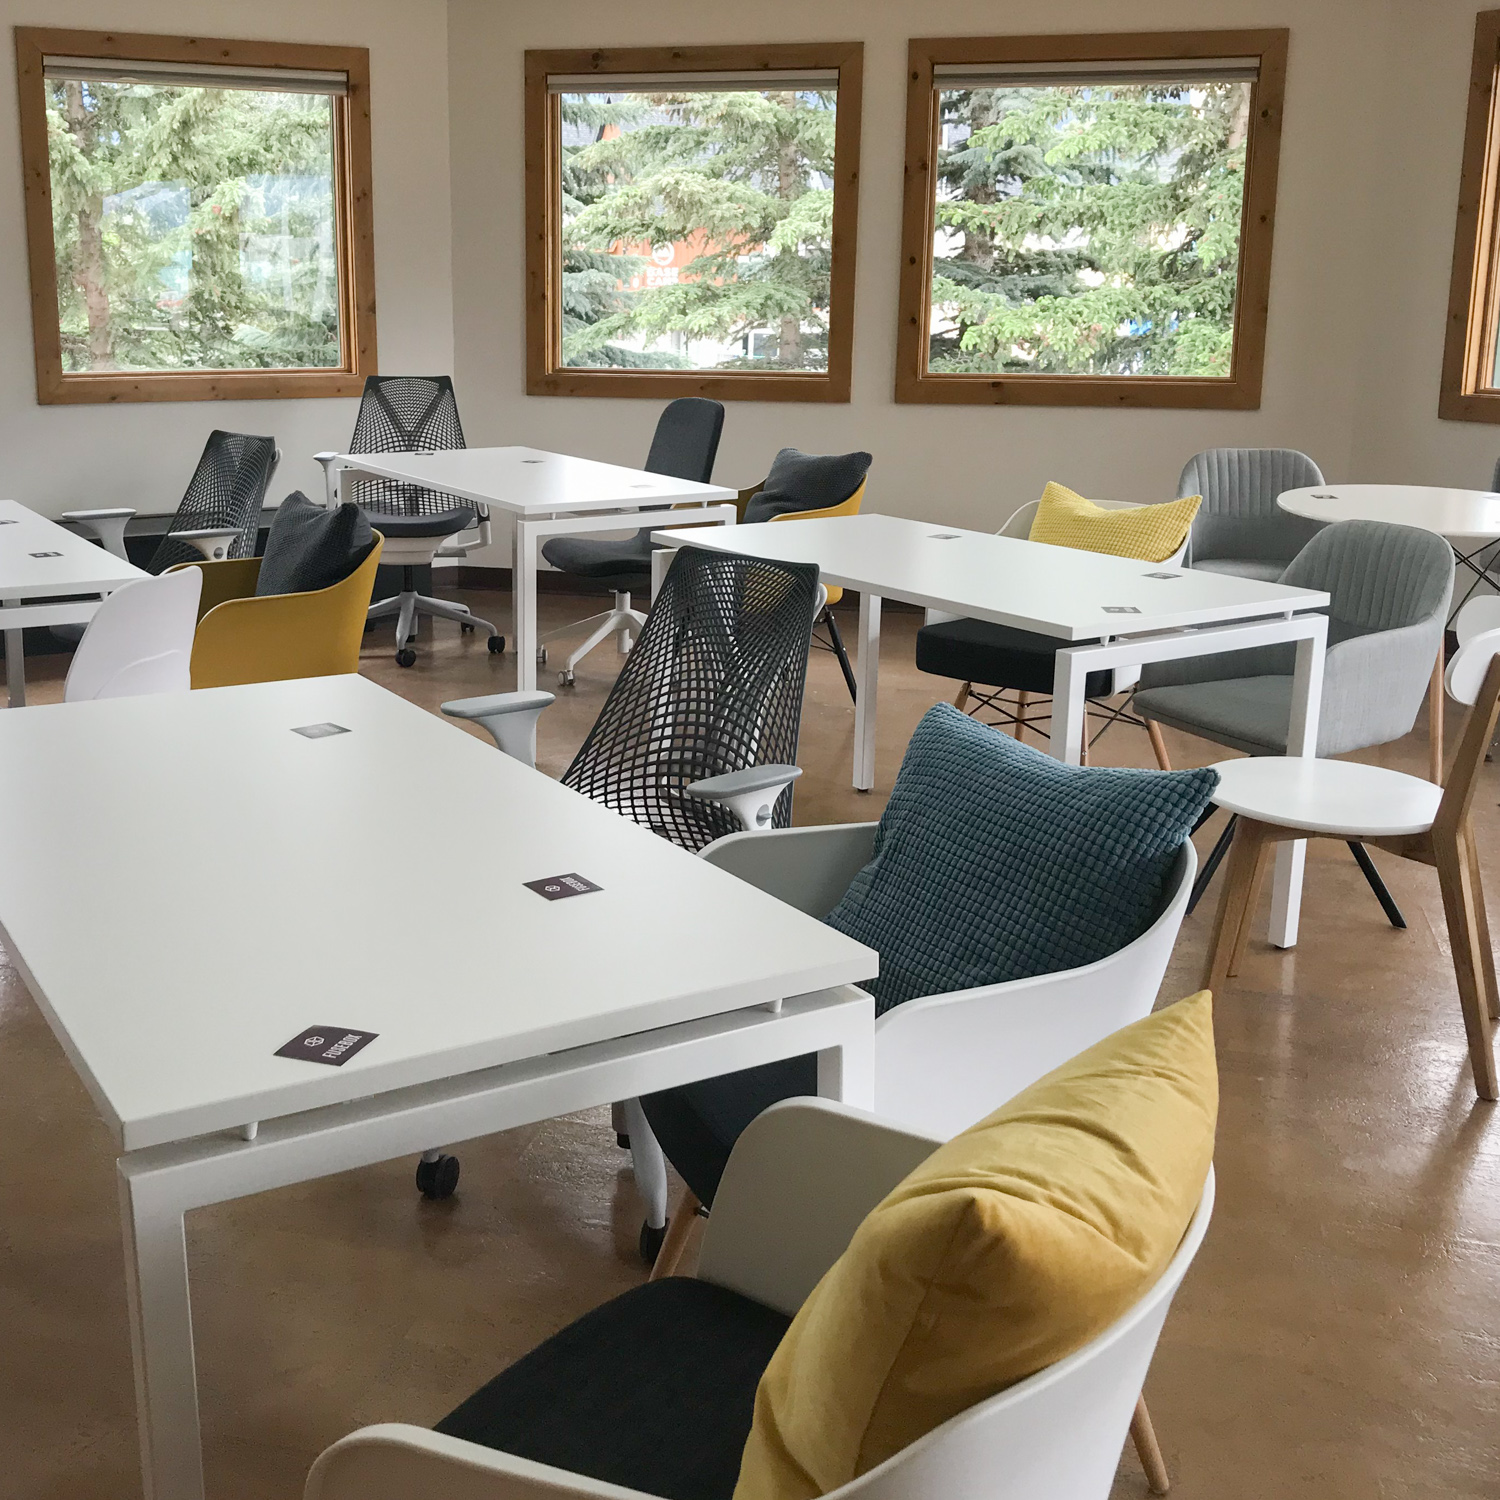 Octagon Studio - Our most adaptable option for larger gatherings. We can accommodate about 30 people seated depending on your requirements. This bright and spacious studio will be set up to your specs as a classroom, boardroom, open concept, photo studio or to suit.-10 windows with spectacular mountain views- Tables and chairs included-55